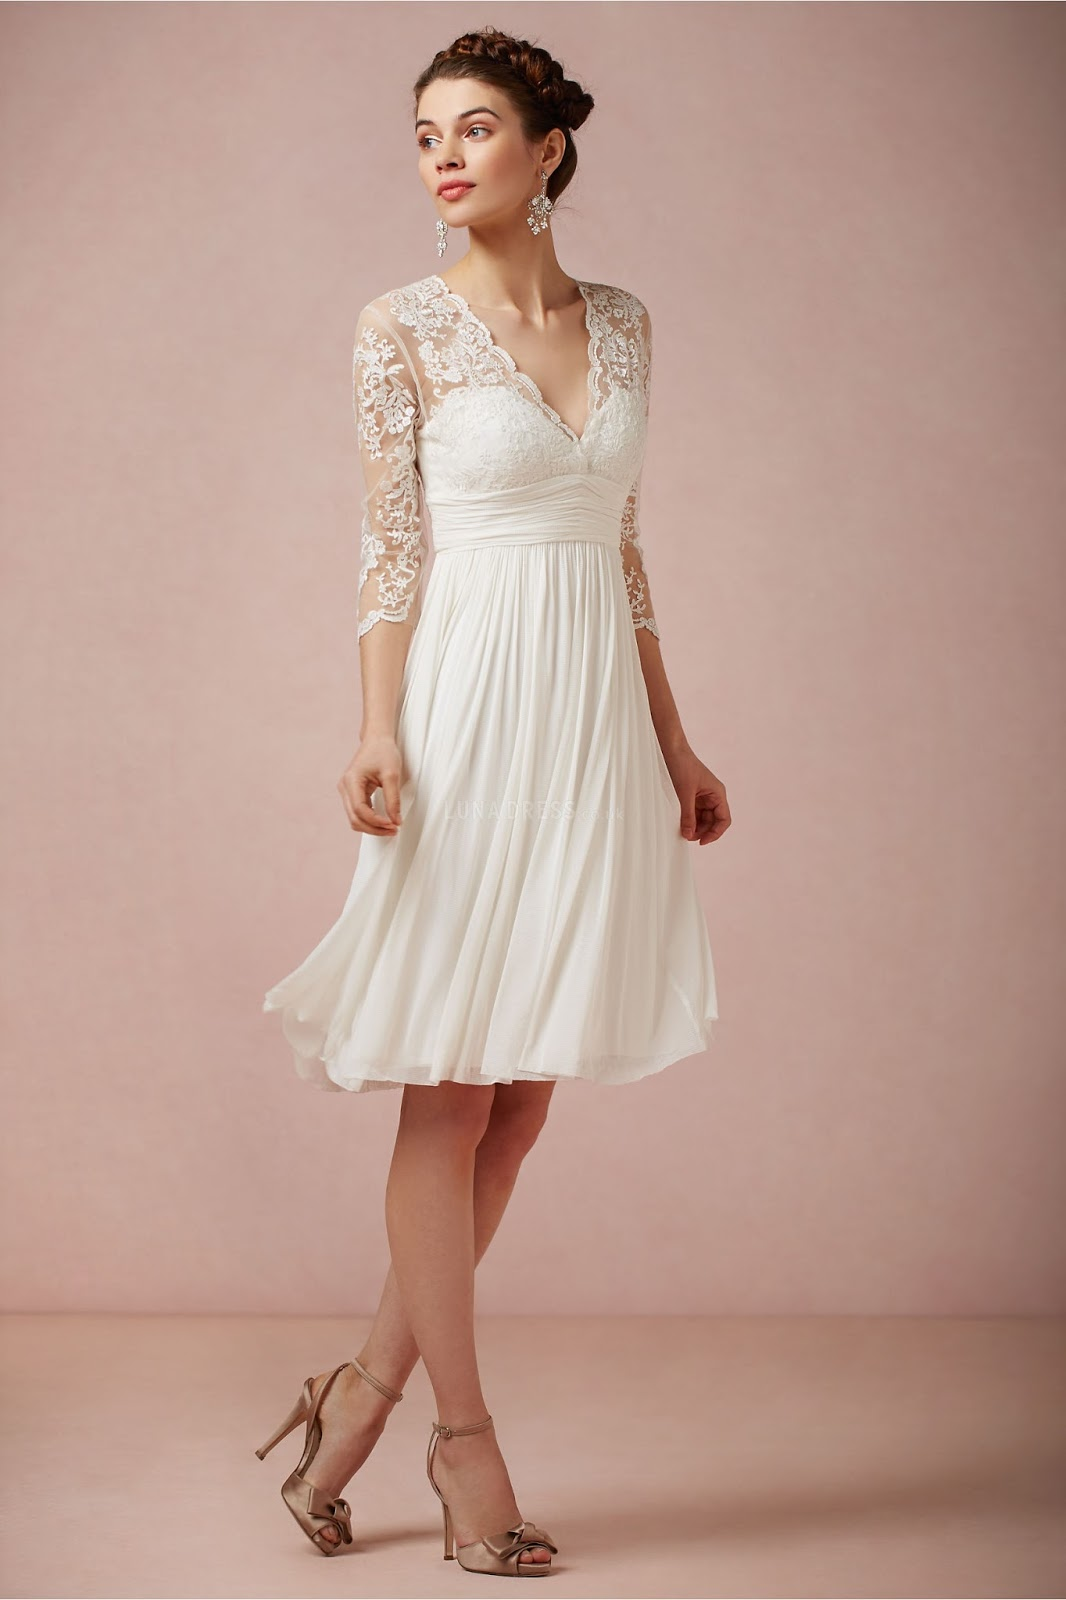 wedding dresses cold climates: Cheap Wedding Dresses With Sleeves